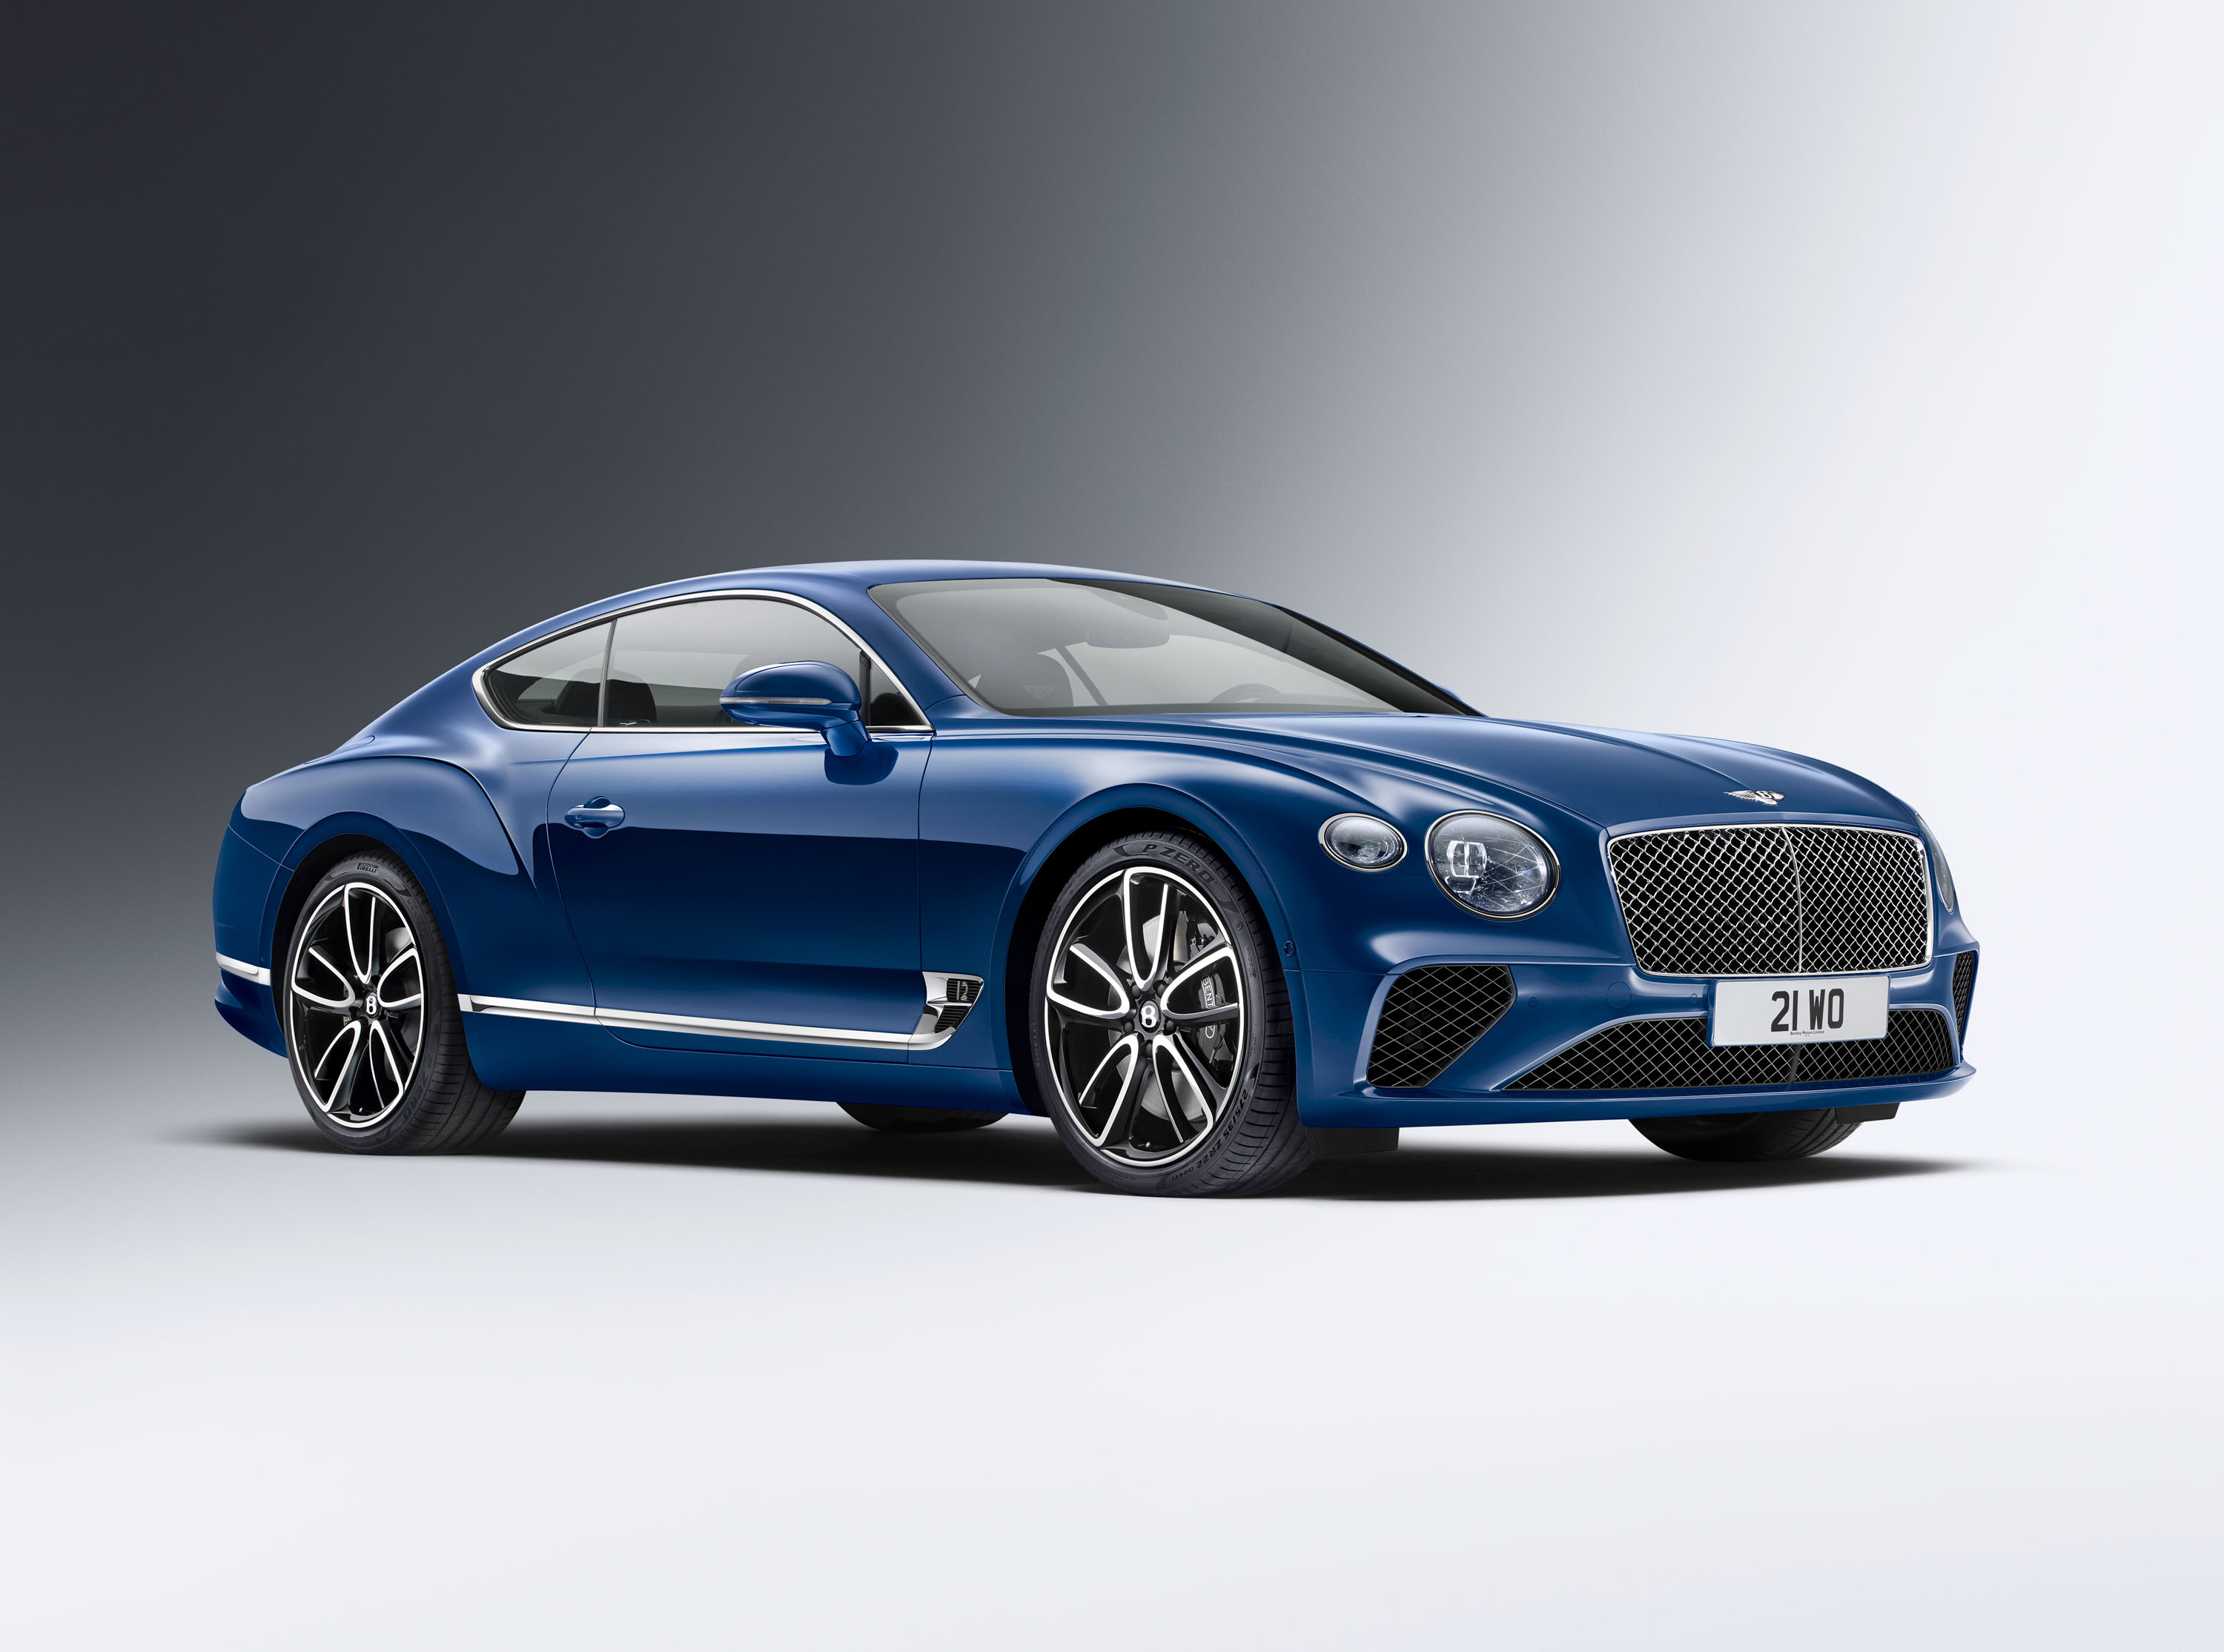 car gt of the review convertible bentley is carbuyer what cutout continental gtc a cost cabriolet reviews